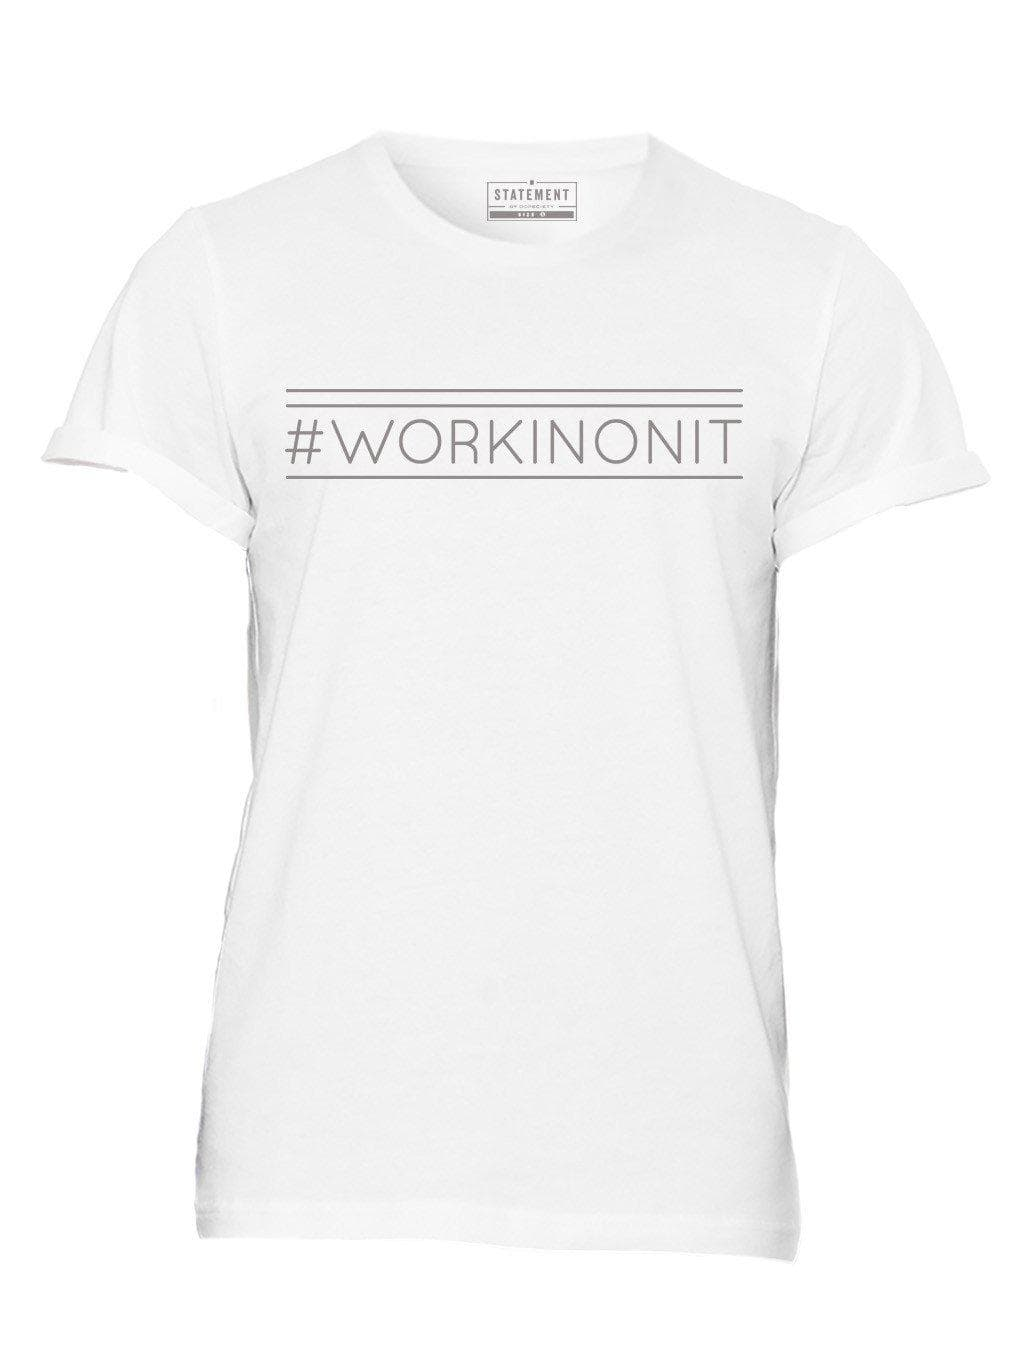 #WORKINONIT Rolled Cuff Unisex Tee